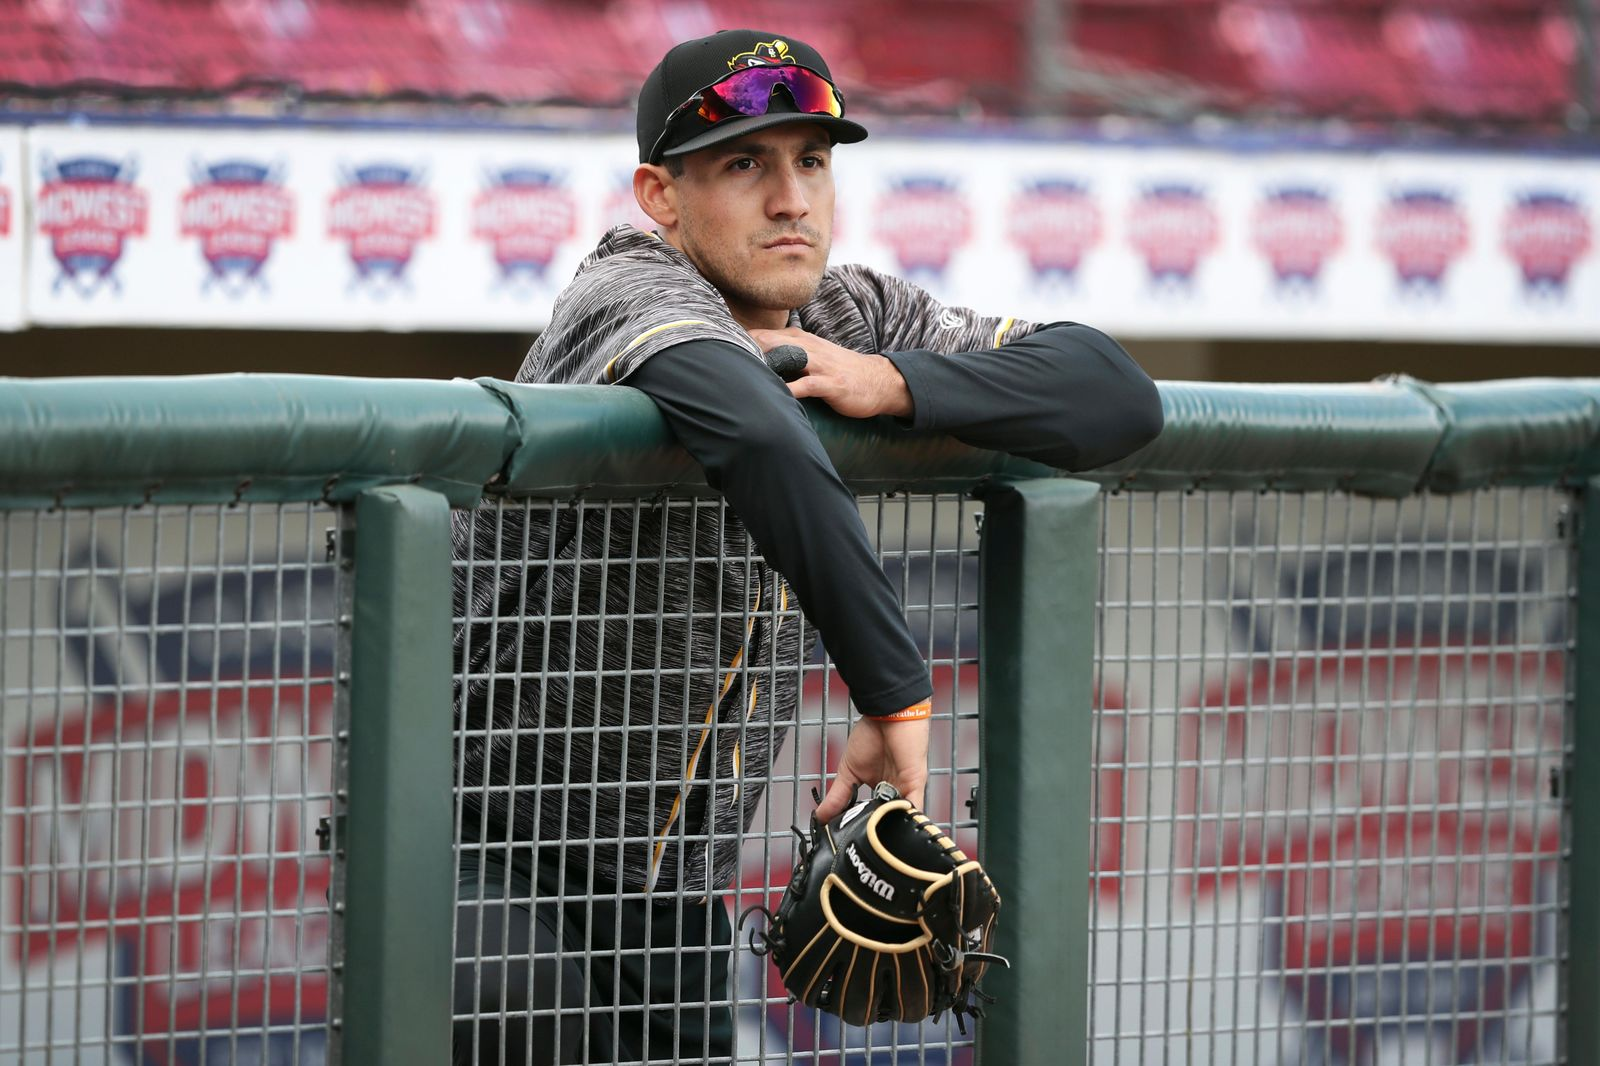 In this Monday, May 13, 2019 photo, Quad Cities River Bandits outfielder Alex McKenna stands in the dugout before a Class-A Midwest League baseball game against the Cedar Rapids Kernels in Cedar Rapids, Iowa. Quad Cities will play at least 40 of their first 43 games away from their home stadium Modern Woodmen Park because of water issues caused by flooding from the nearby Mississippi River. (AP Photo/Charlie Neibergall)